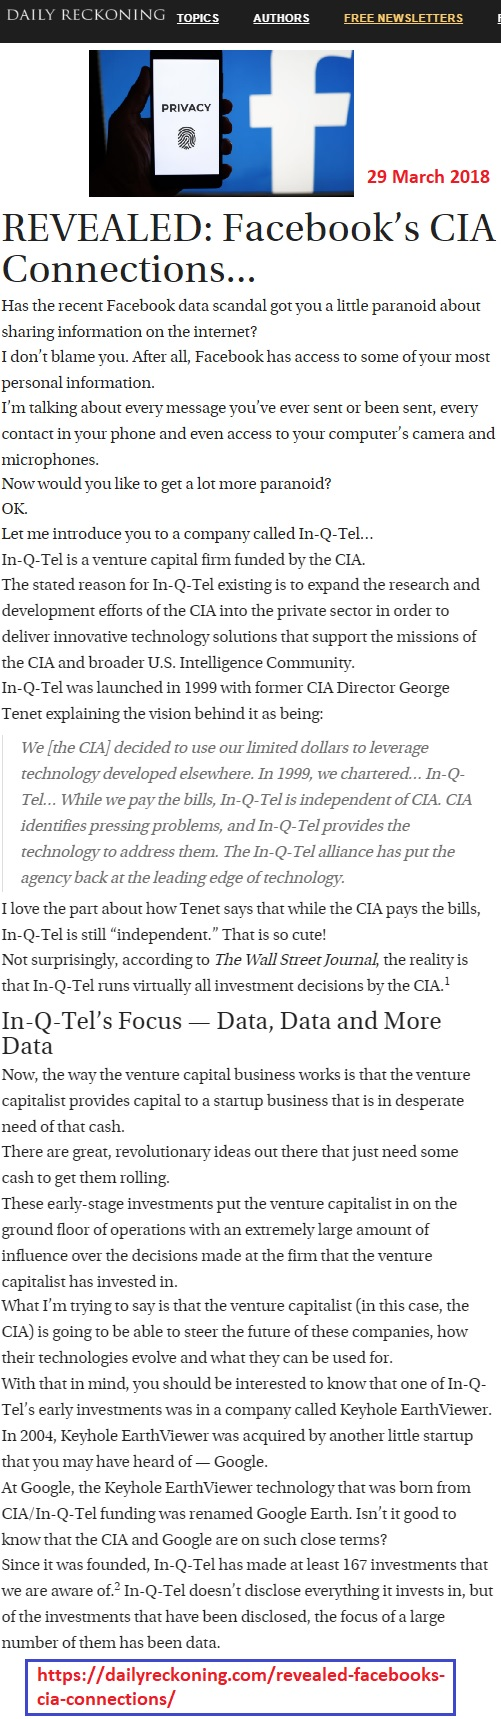 https://stpaulresearch.com/2018/03/29/revealed-facebooks-cia-connections/